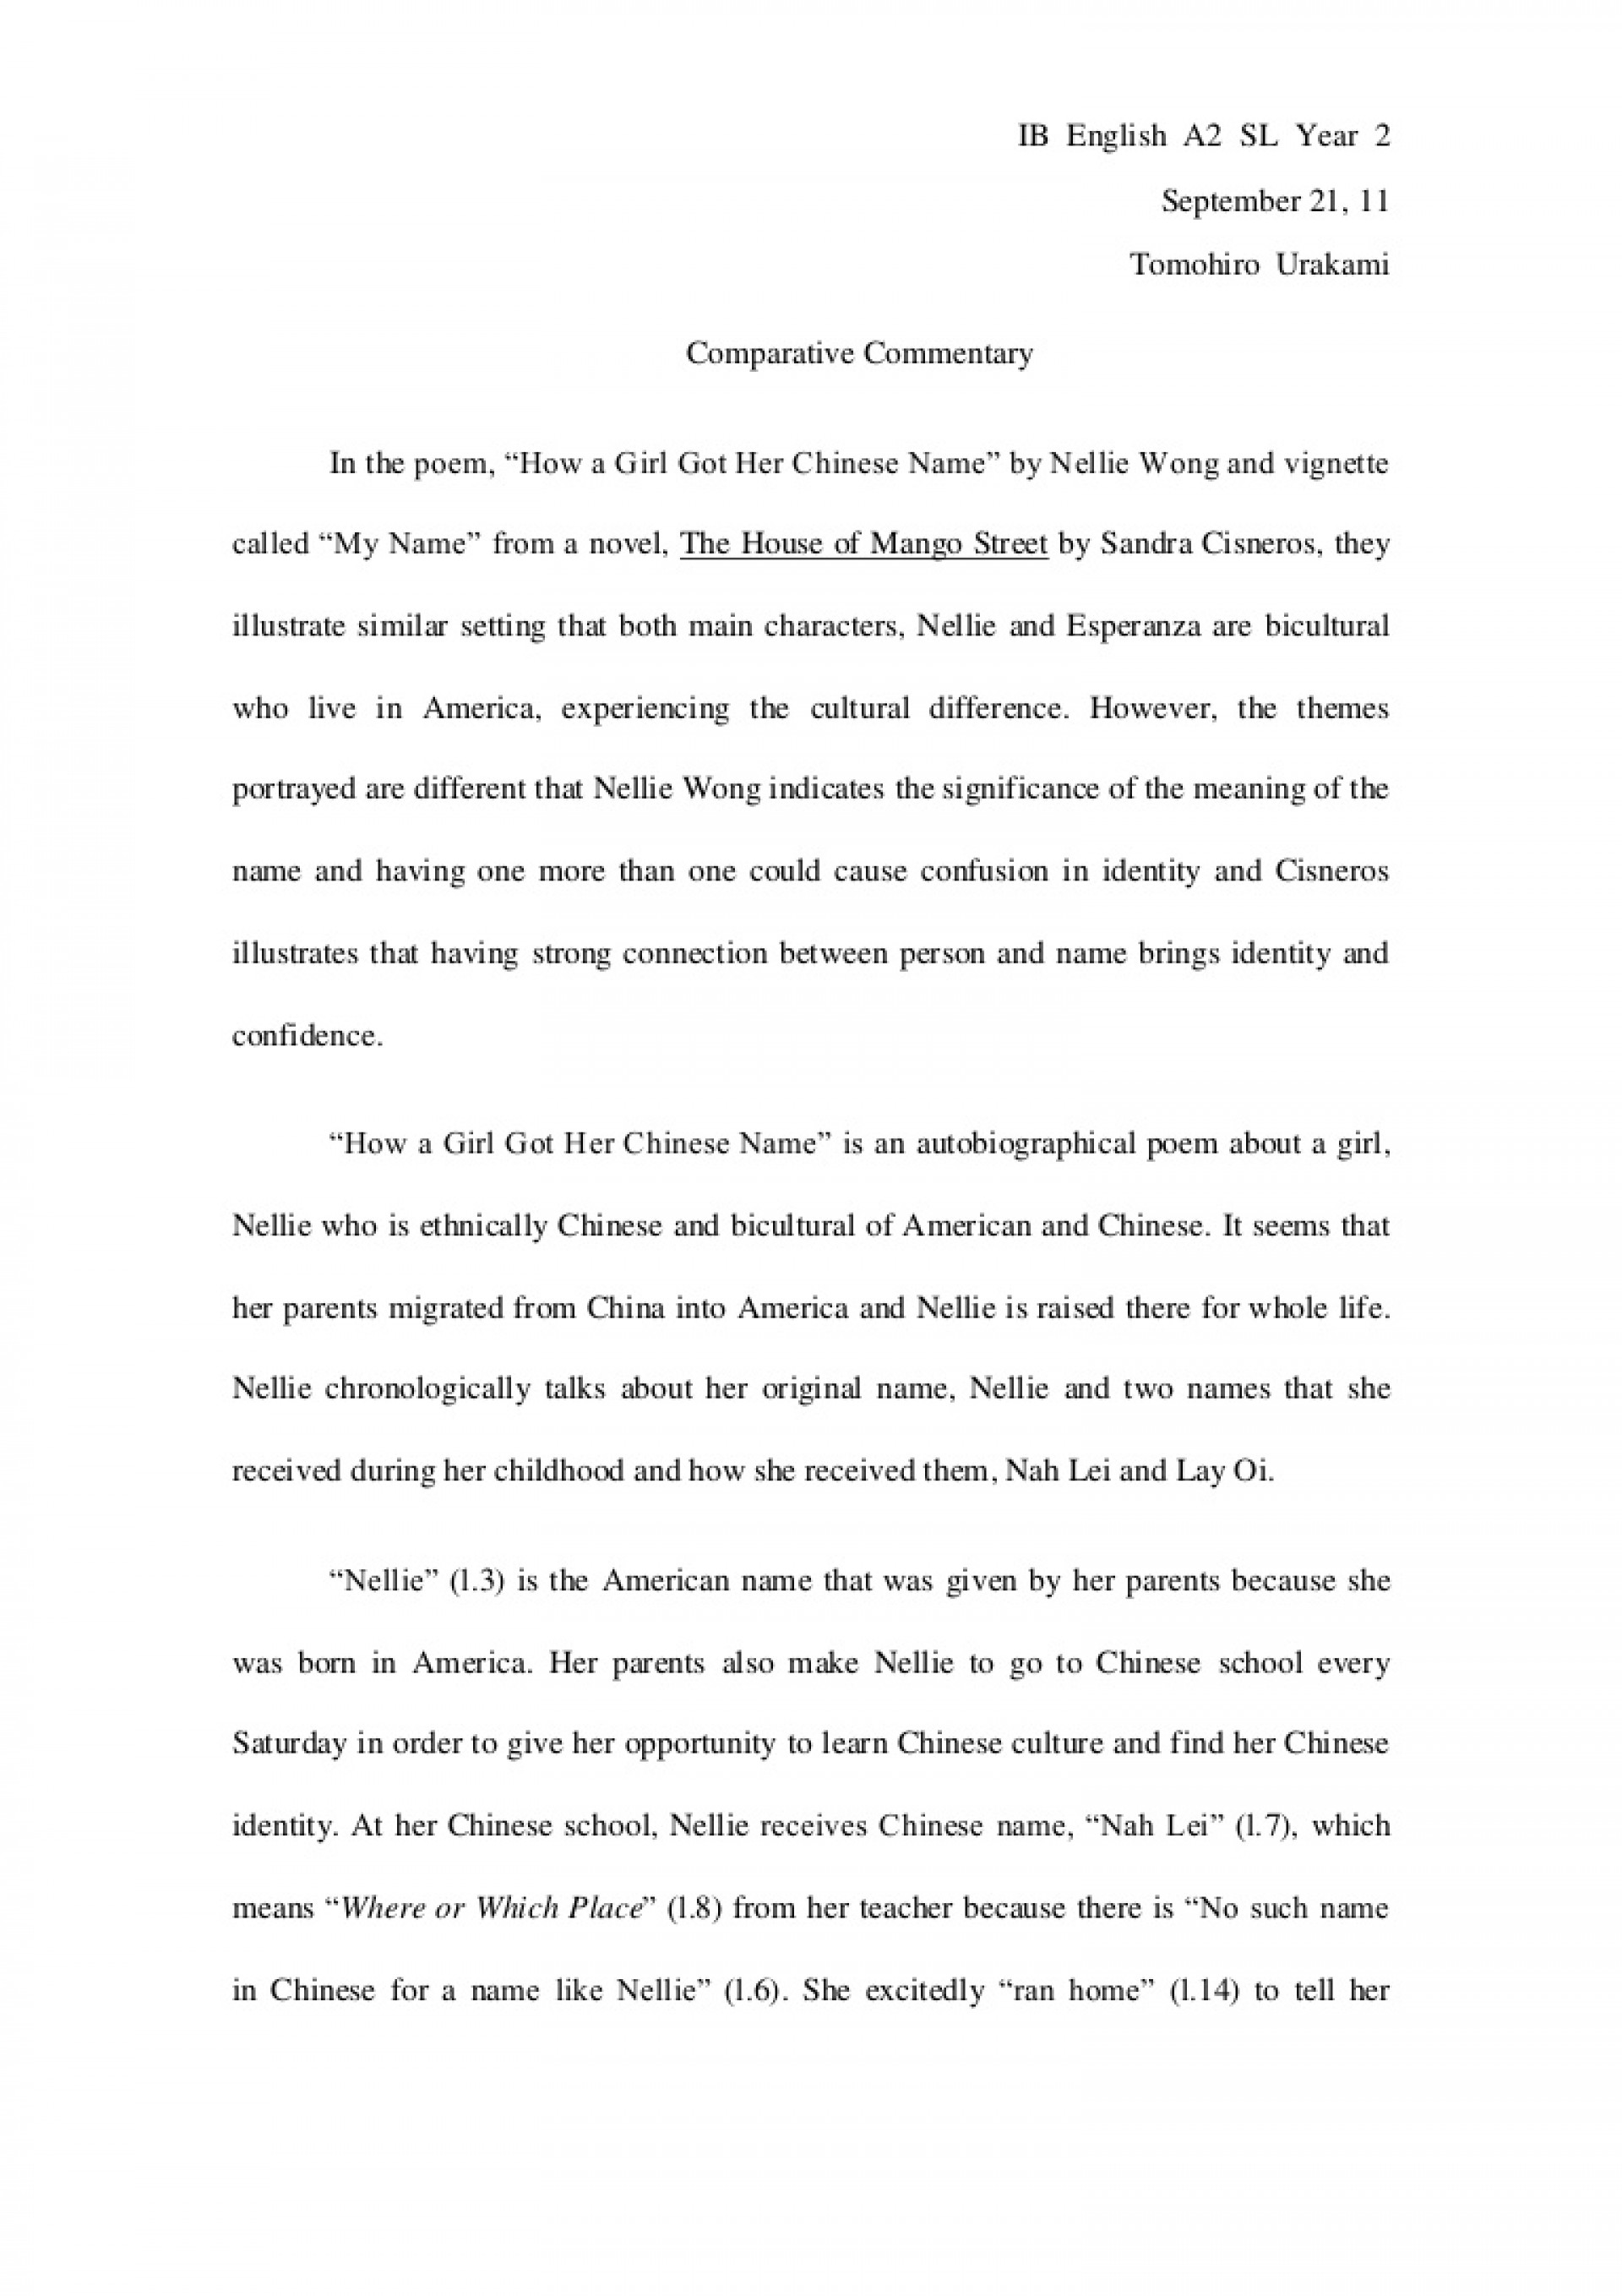 007 Essay Example Comparativeessaydraft Phpapp02 Thumbnail Comparative Beautiful Sample Vce English Introduction Template 1920